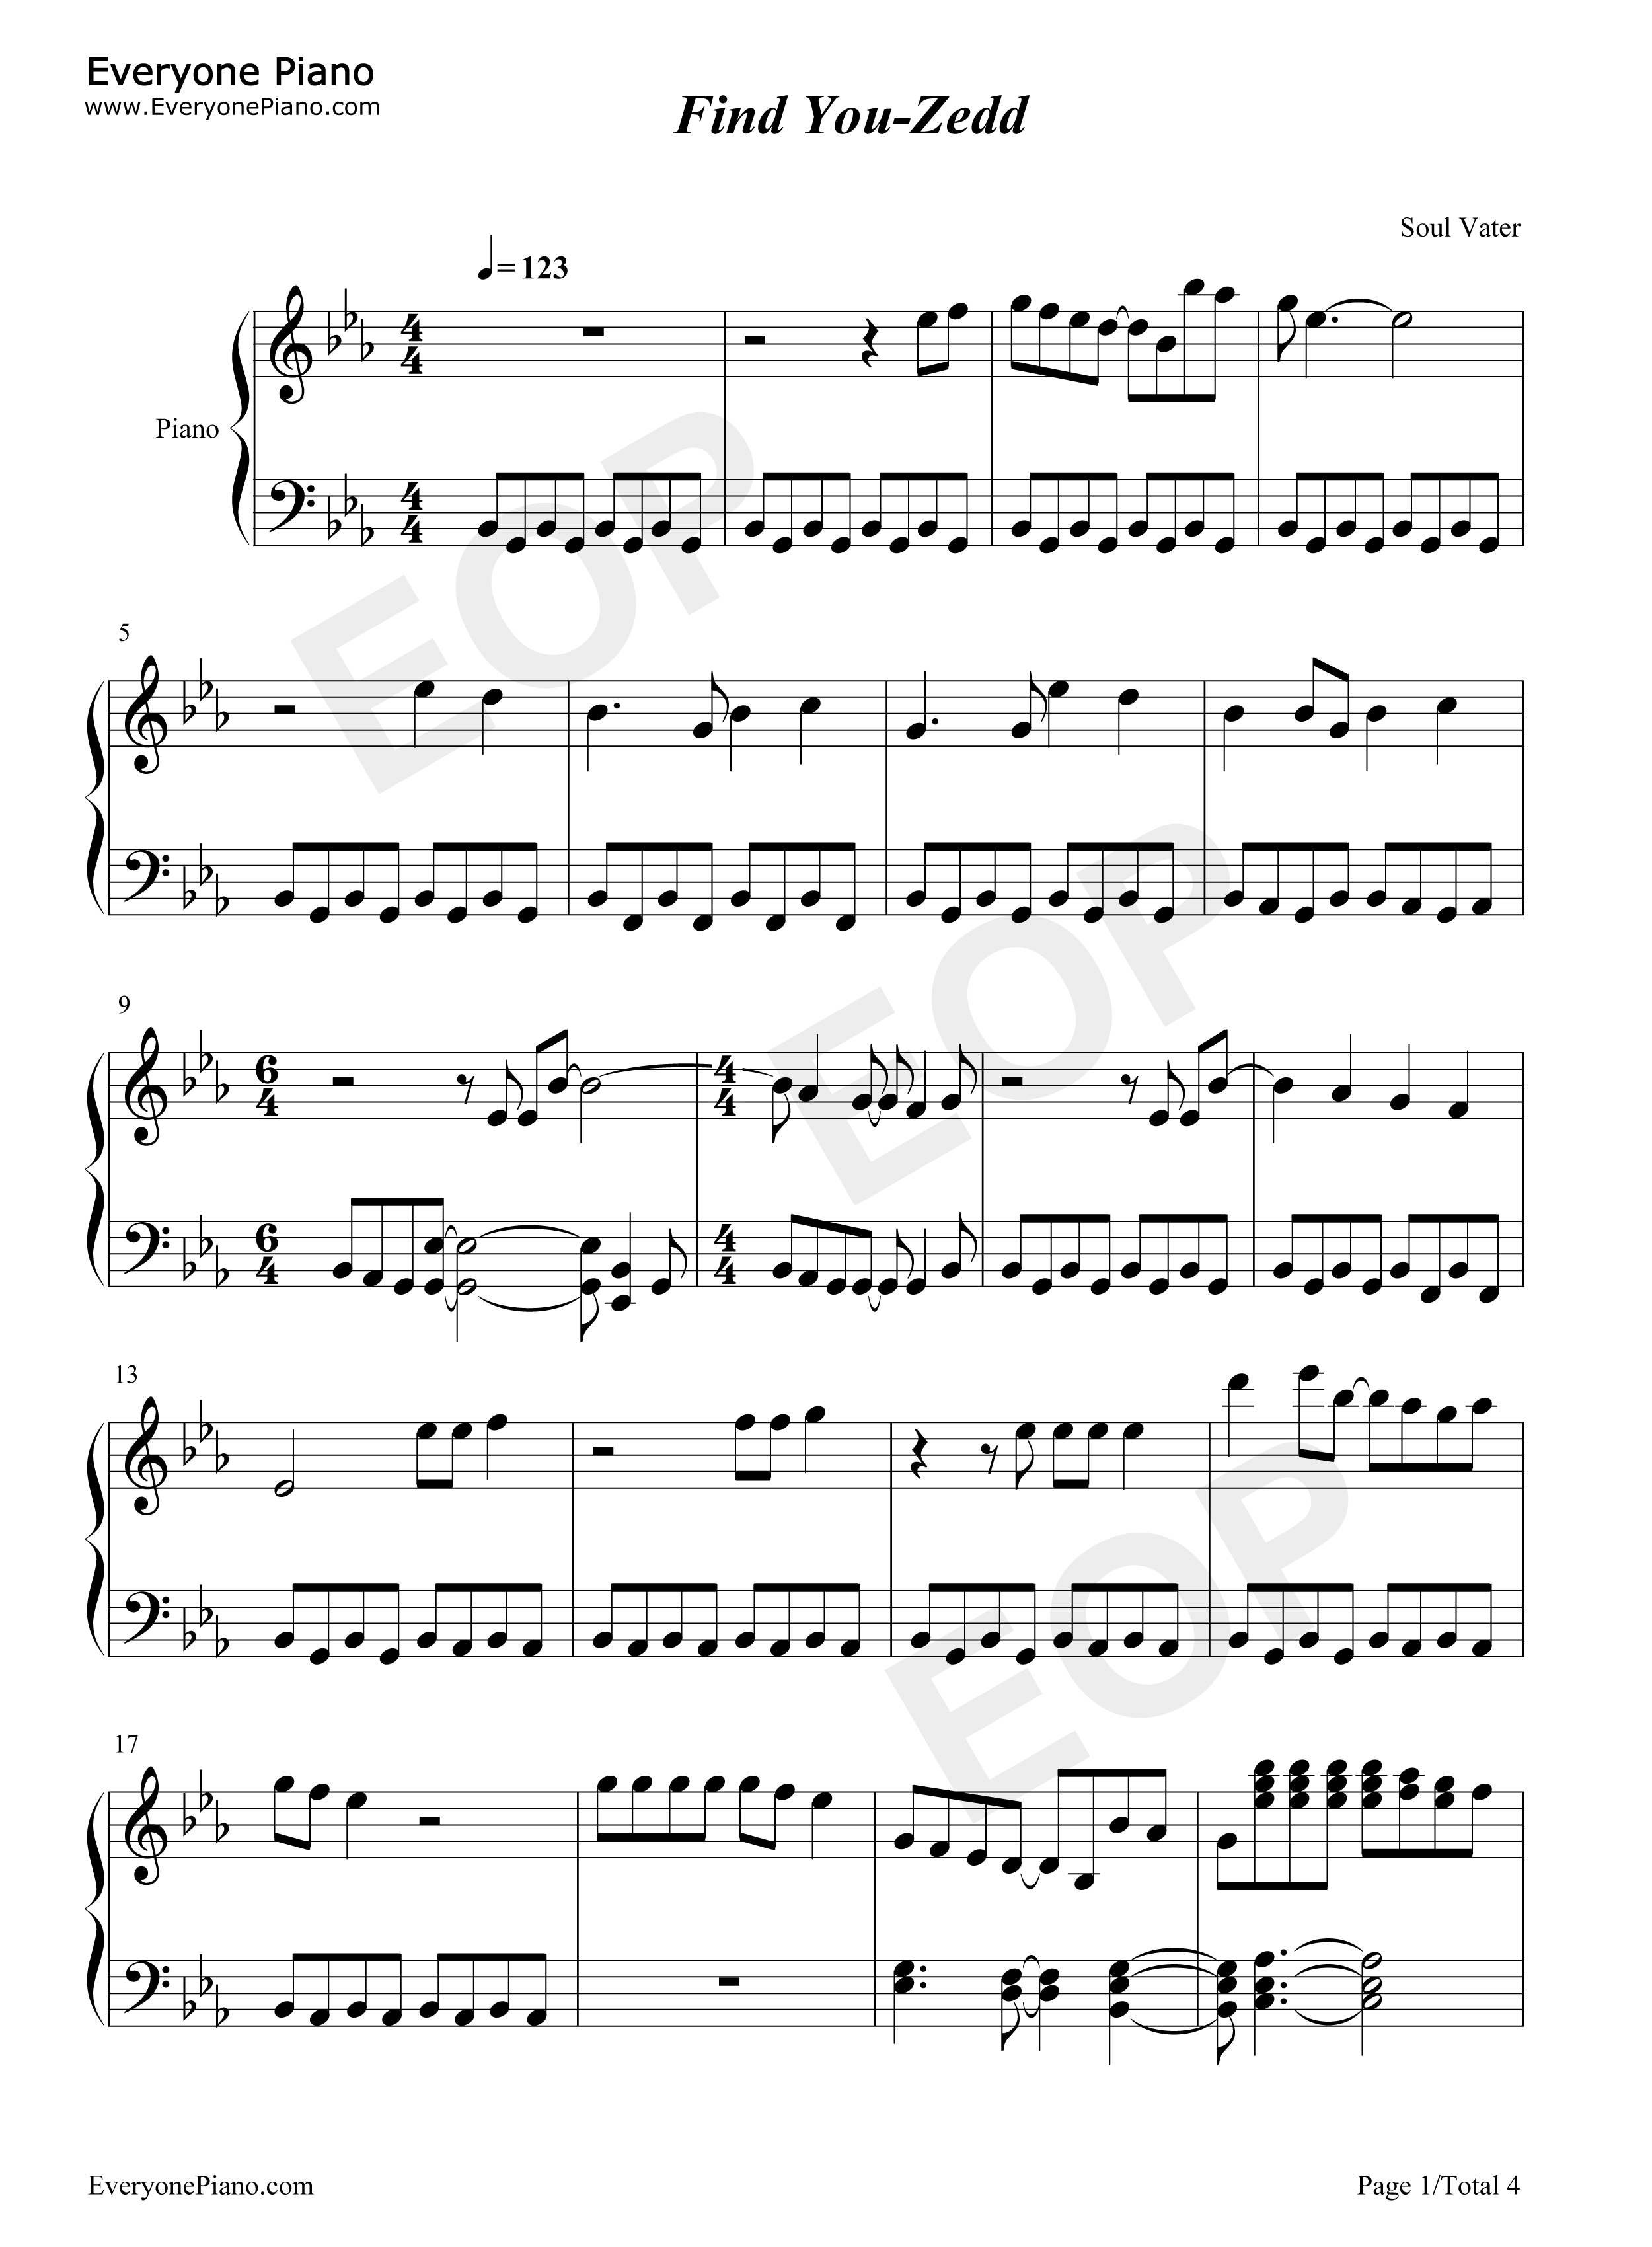 Find you zedd stave preview 1 free piano sheet music amp piano chords